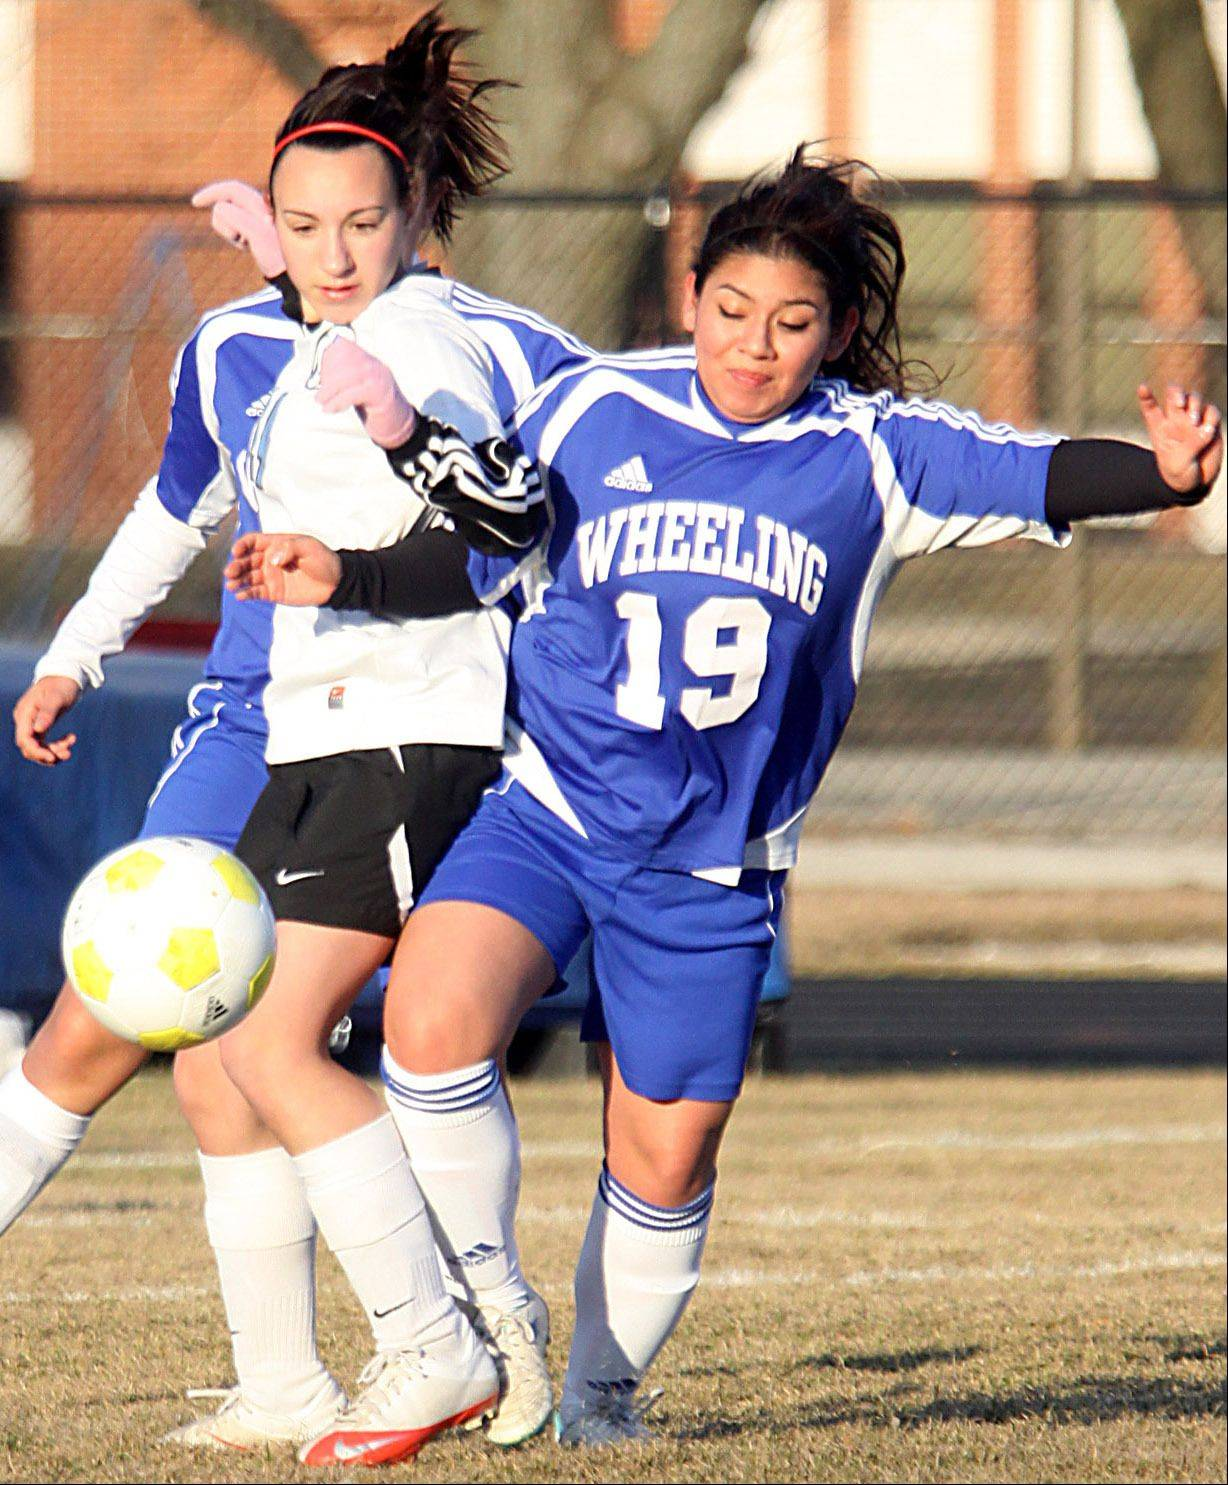 Wheeling's CeCe Estrada, right, and Maine West's Alice Faraone, left, pursue the ball on Monday in Des Plaines.